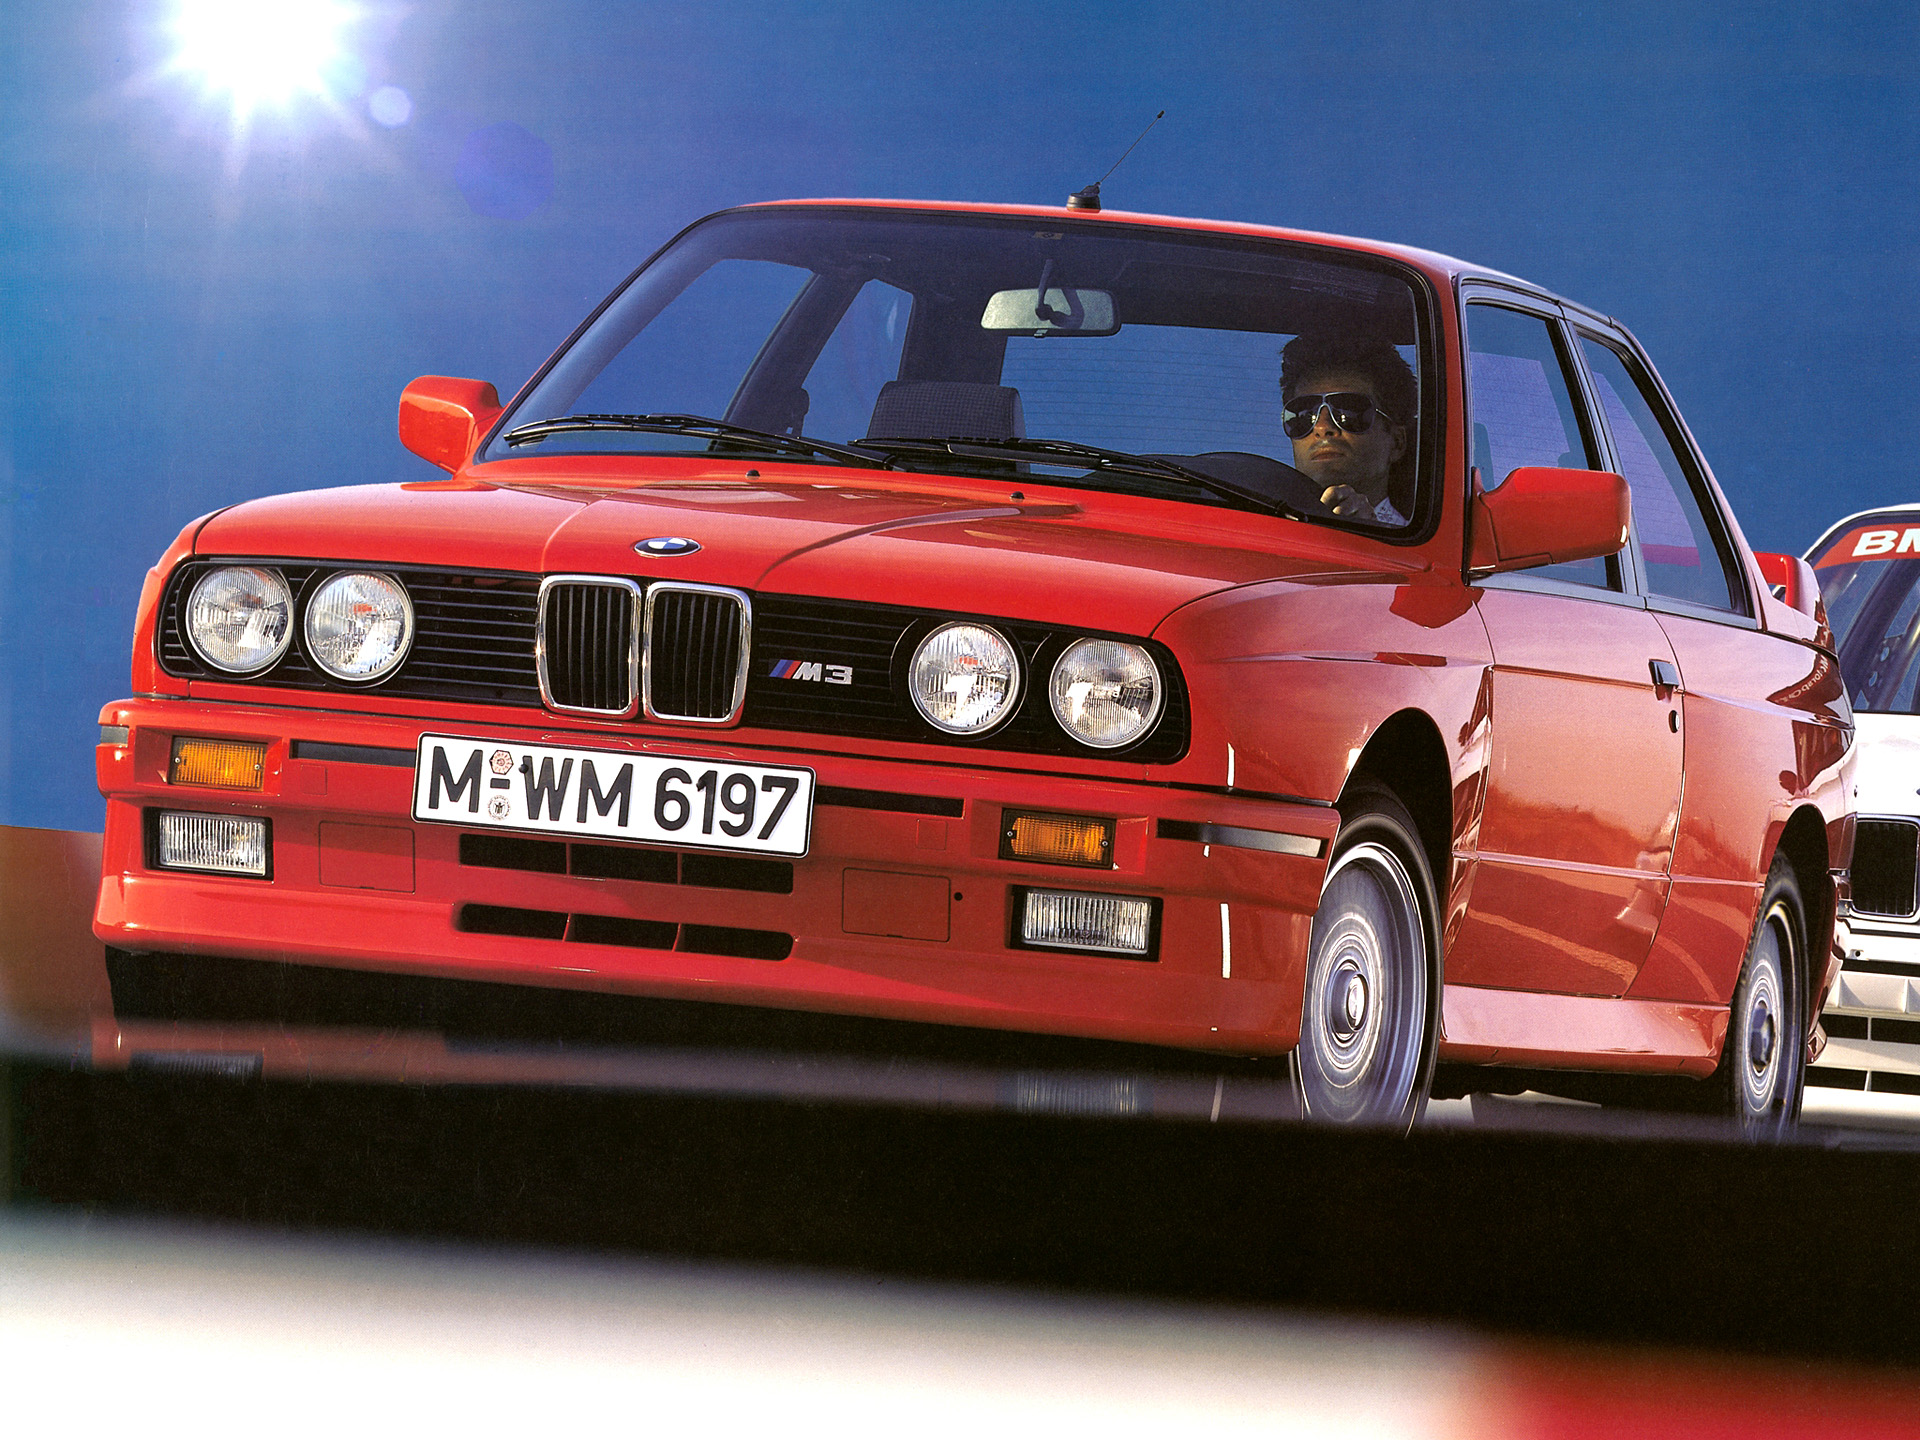 1987 BMW E30 M3 Wallpapers | SuperCars.net